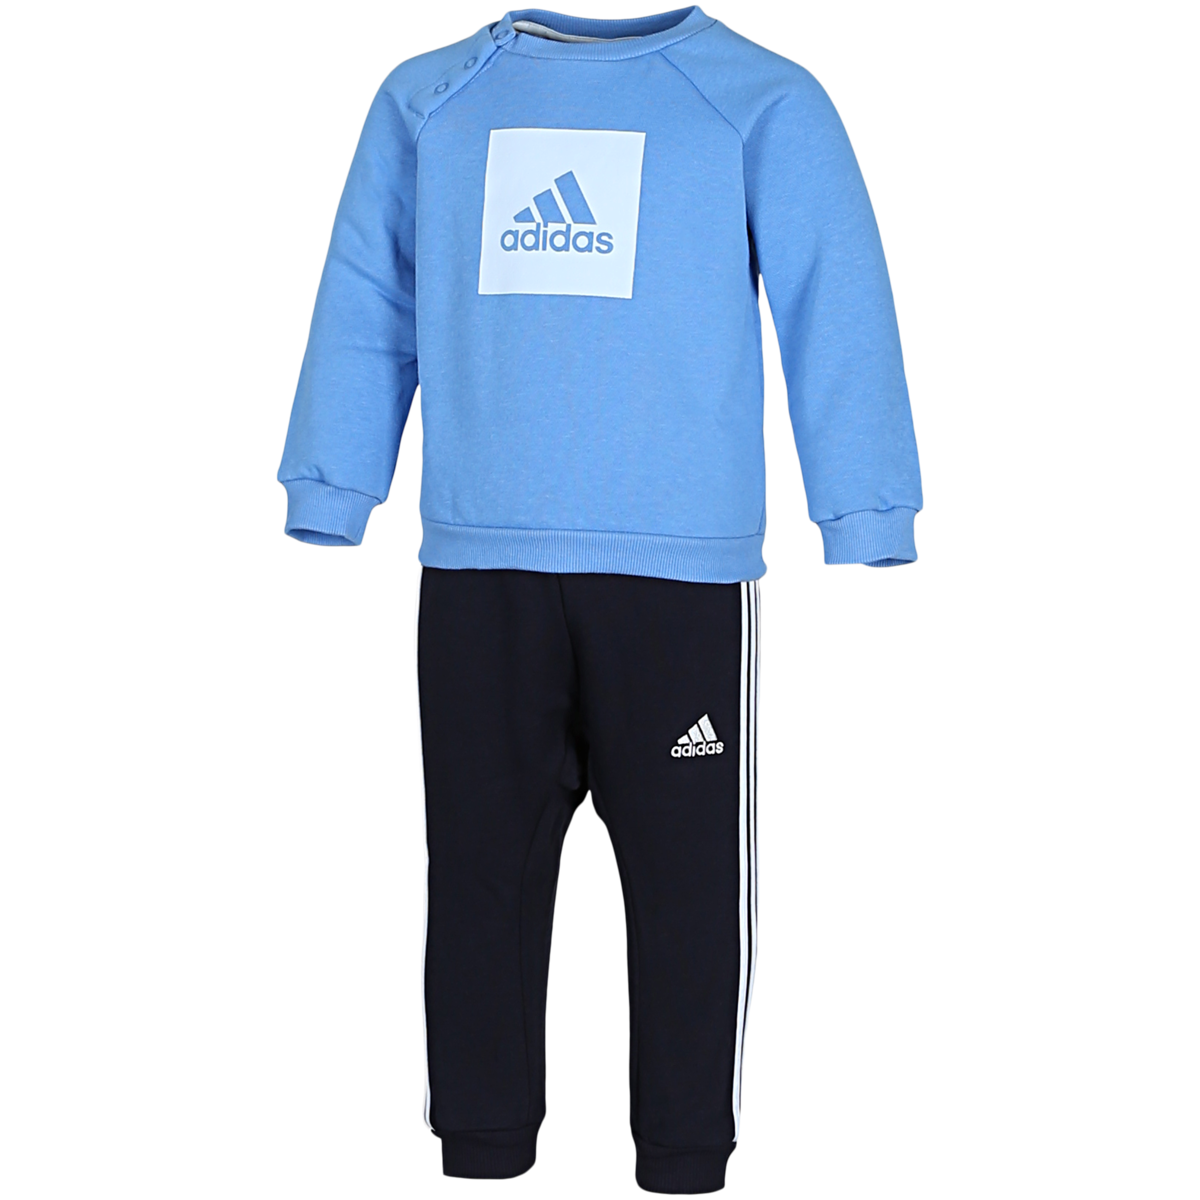 adidas - 3-Stripes Fleece Joggingsæt - Blå